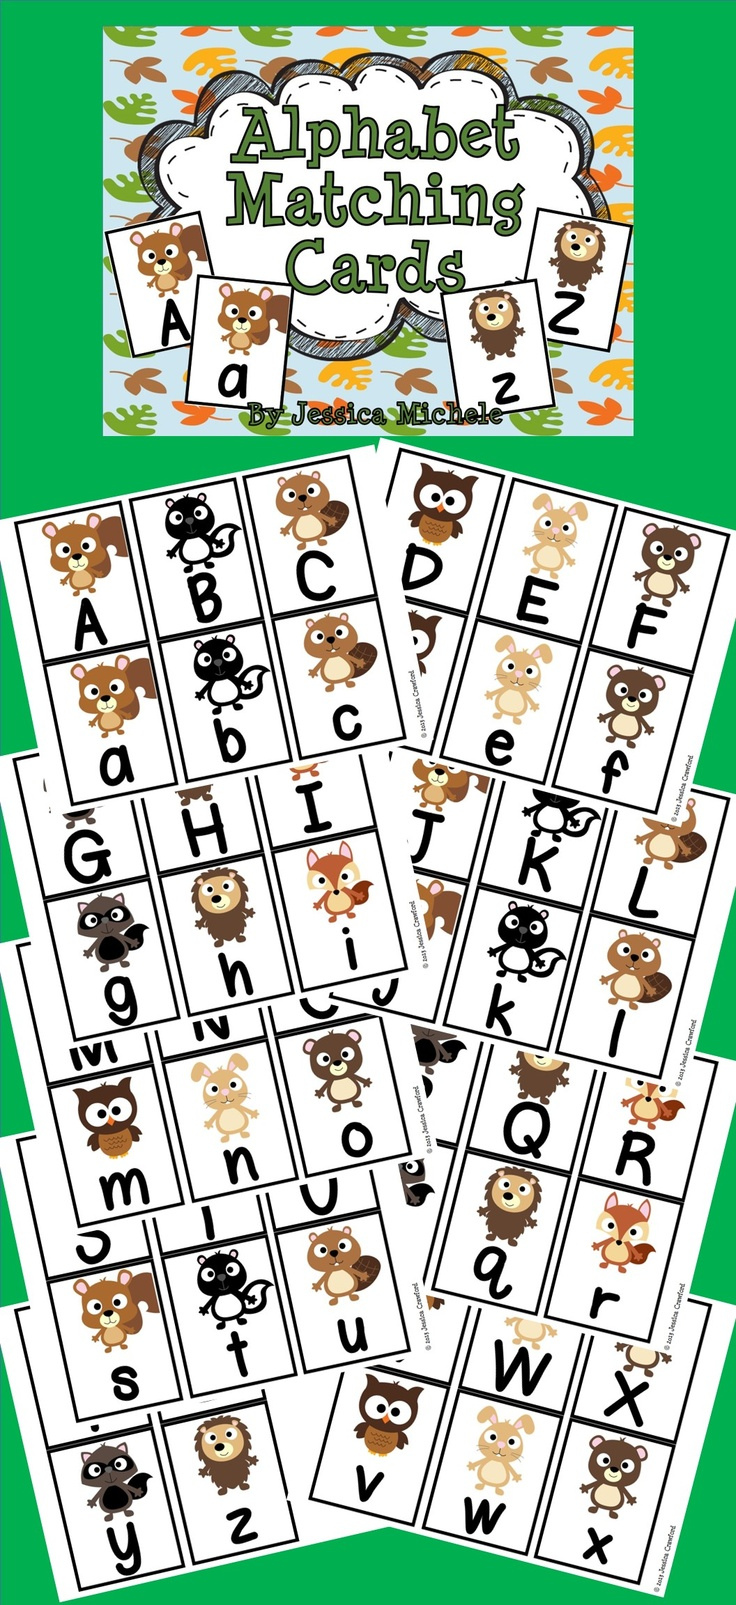 Your students will love to match their uppercase and lowercase letters using these fun woodland animal themed alphabet matching cards! $